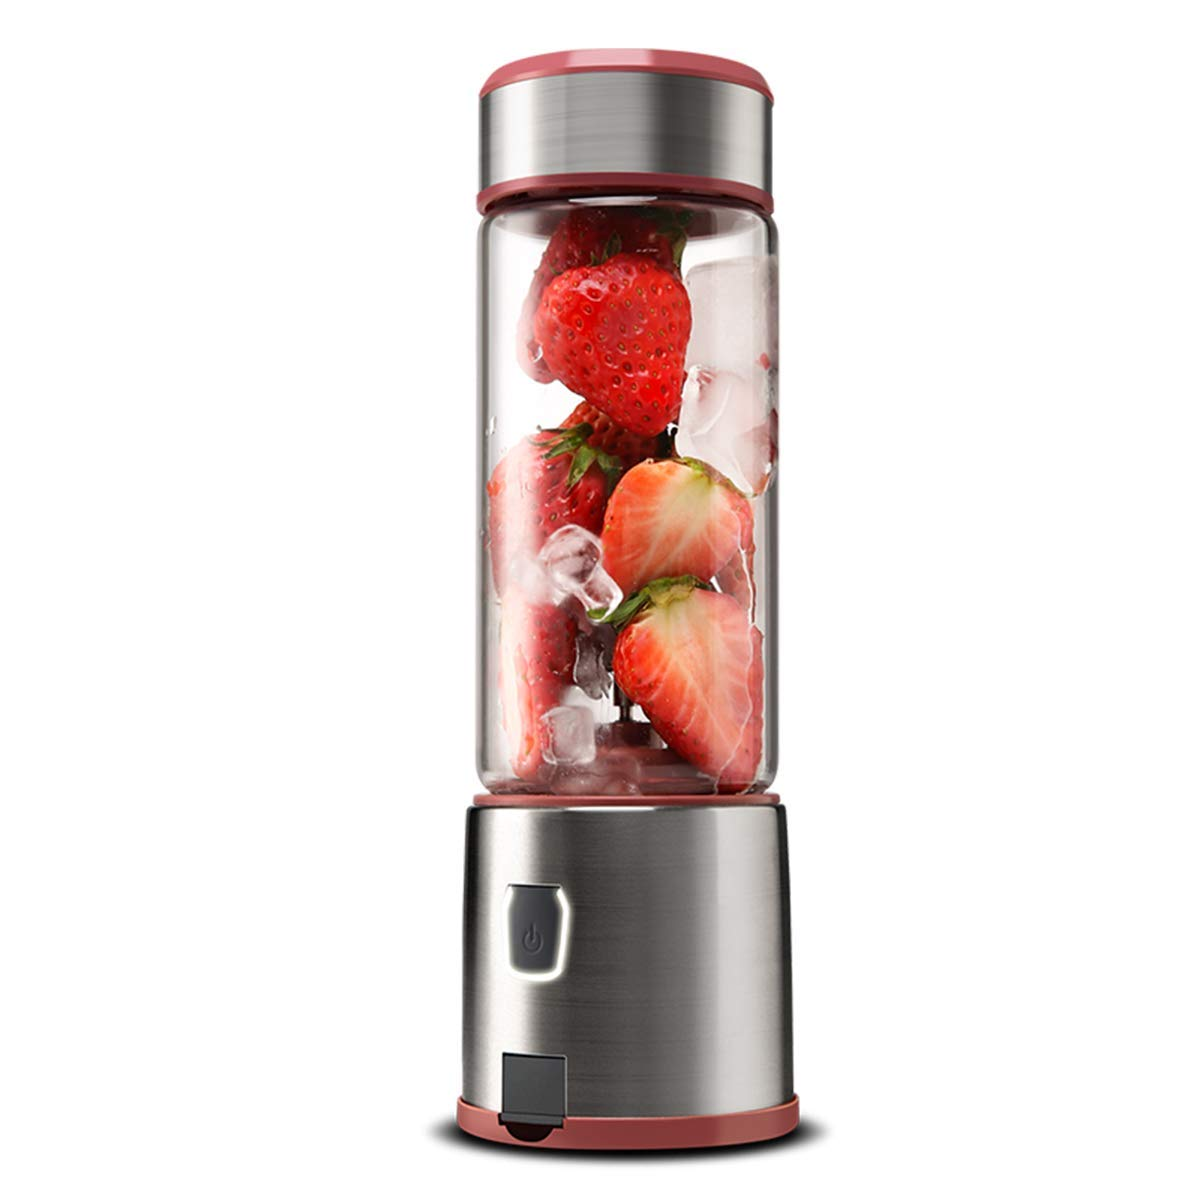 Portable Blender, TOPQSC Smoothie Blender 15oz USB Rechargeable 5200mAh, Personal Blender with Durable Glass, Stainless blades 16500rpm, Perfect for Shakes,Smoothies,Baby Food, FDA/BPA Free (Pink) by TOPQSC